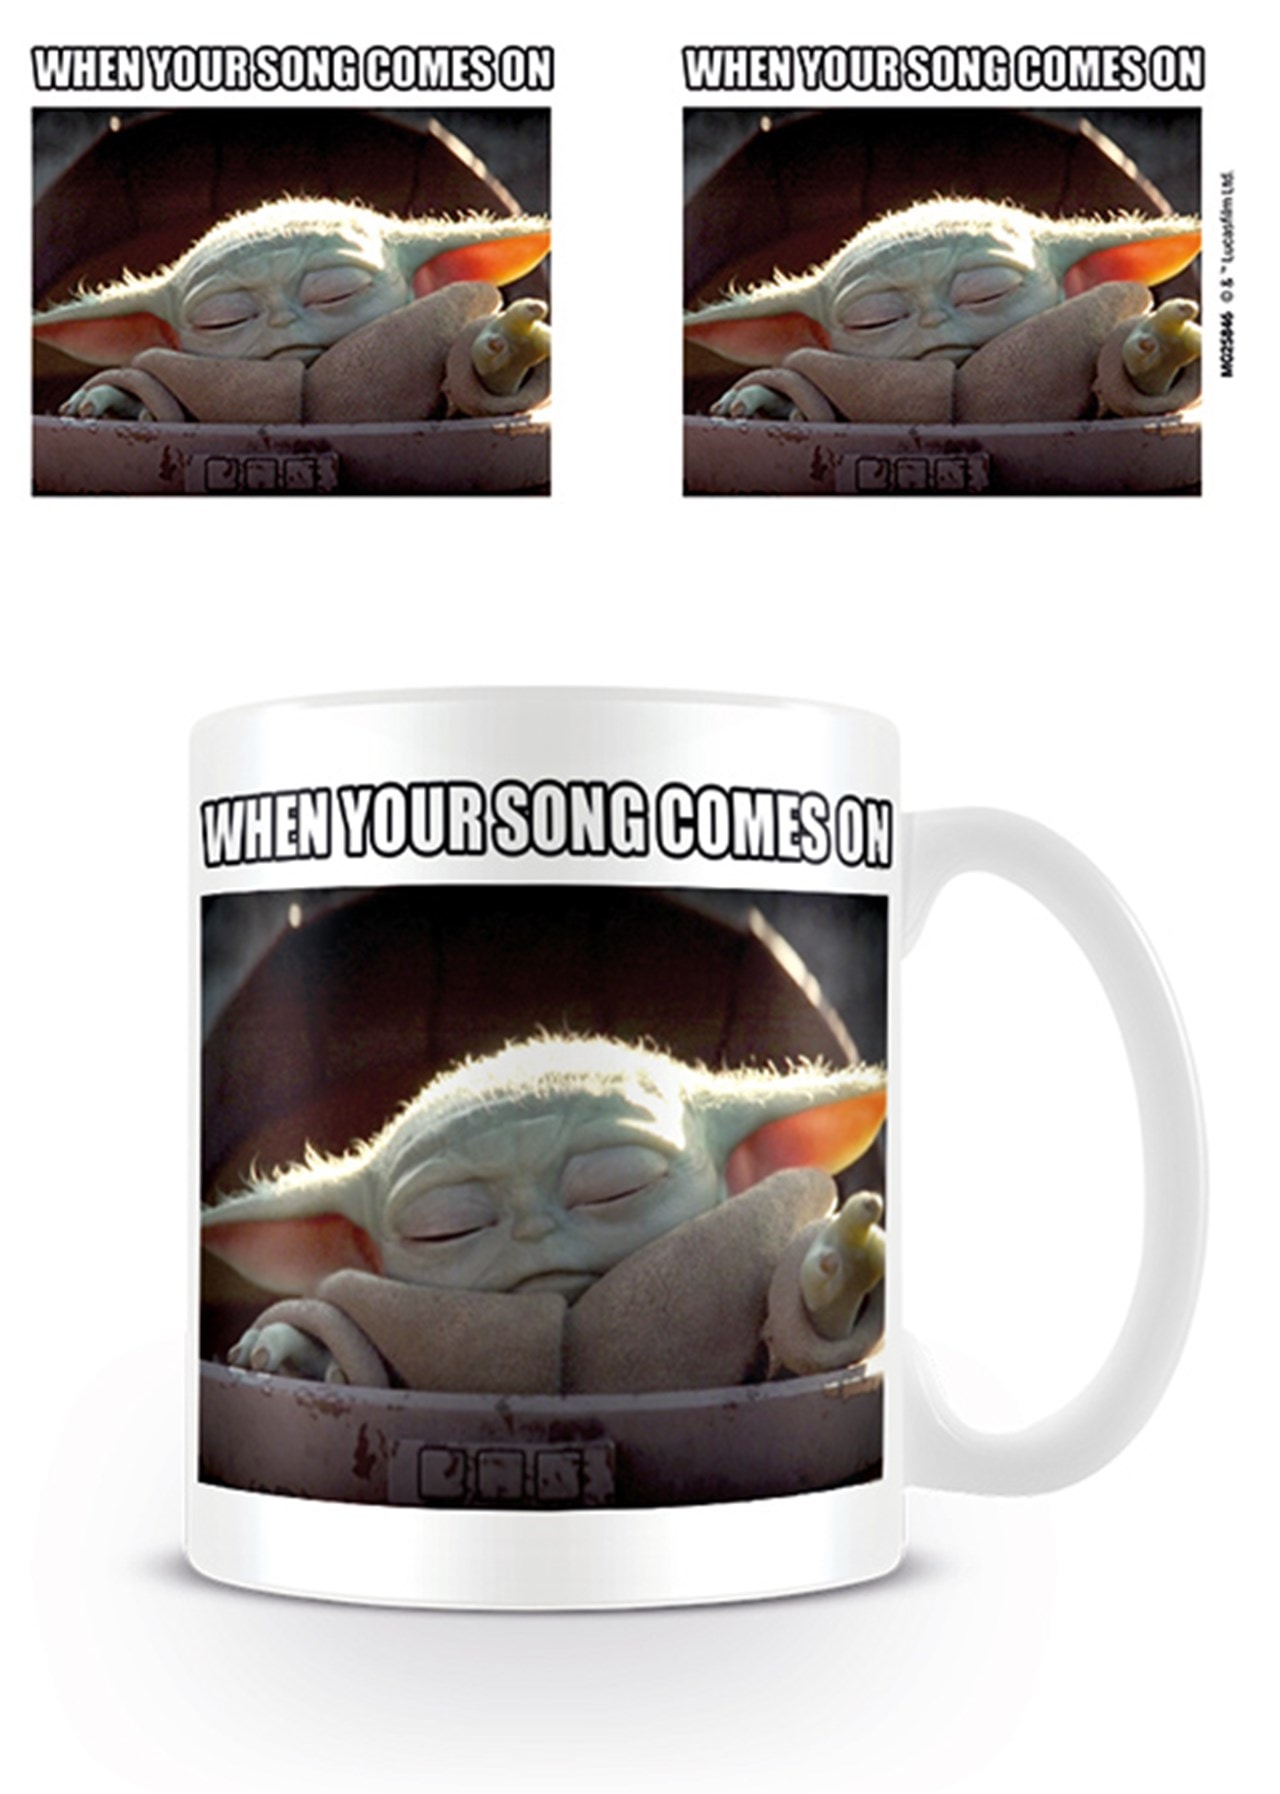 Mug Star Wars: The Mandalorian: Baby Yoda (When Your Song Comes On) - 1